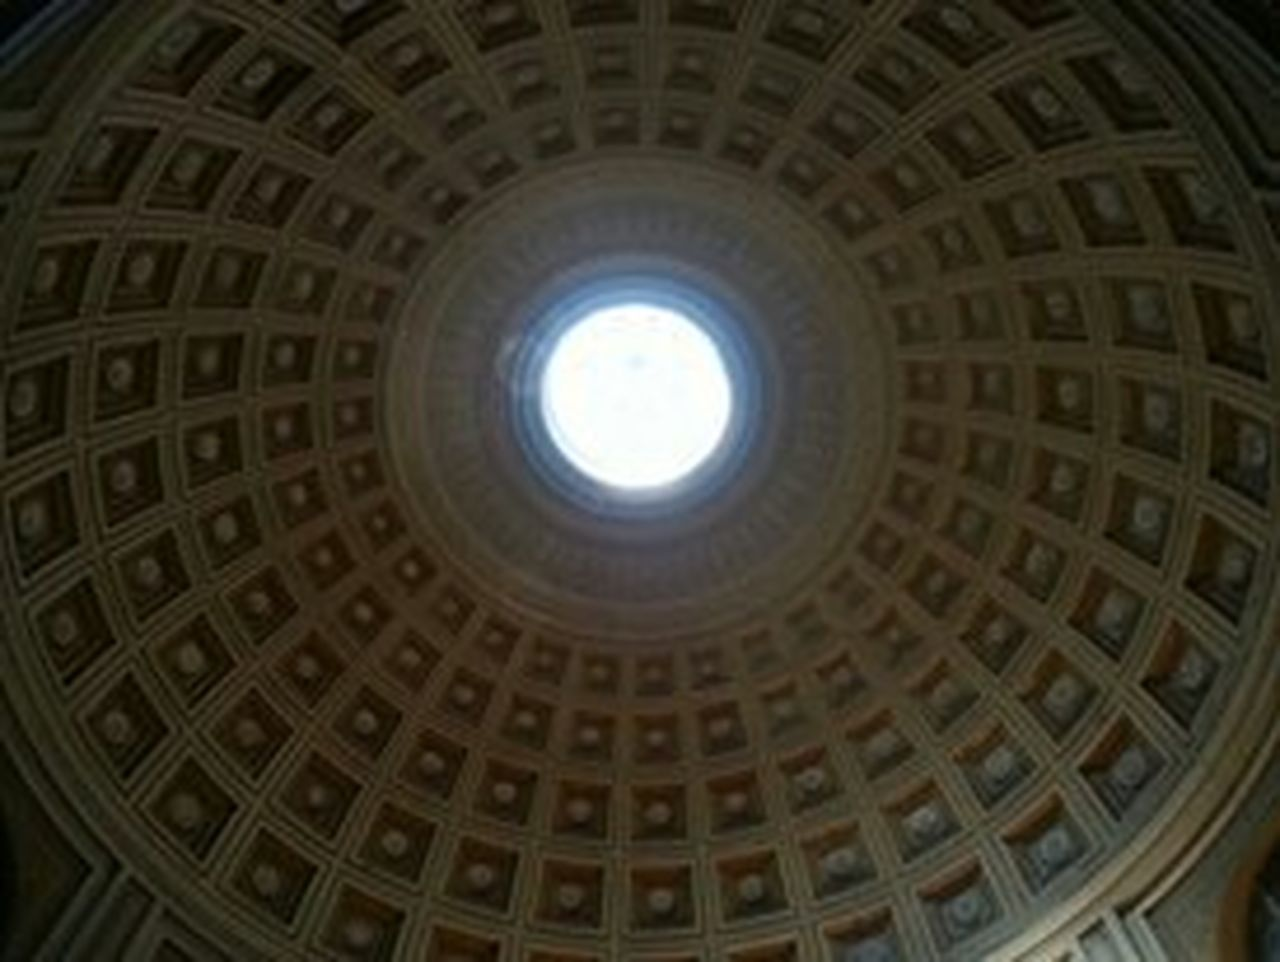 architecture, dome, history, built structure, cupola, travel destinations, low angle view, indoors, religion, ceiling, place of worship, spirituality, no people, day, city, sky